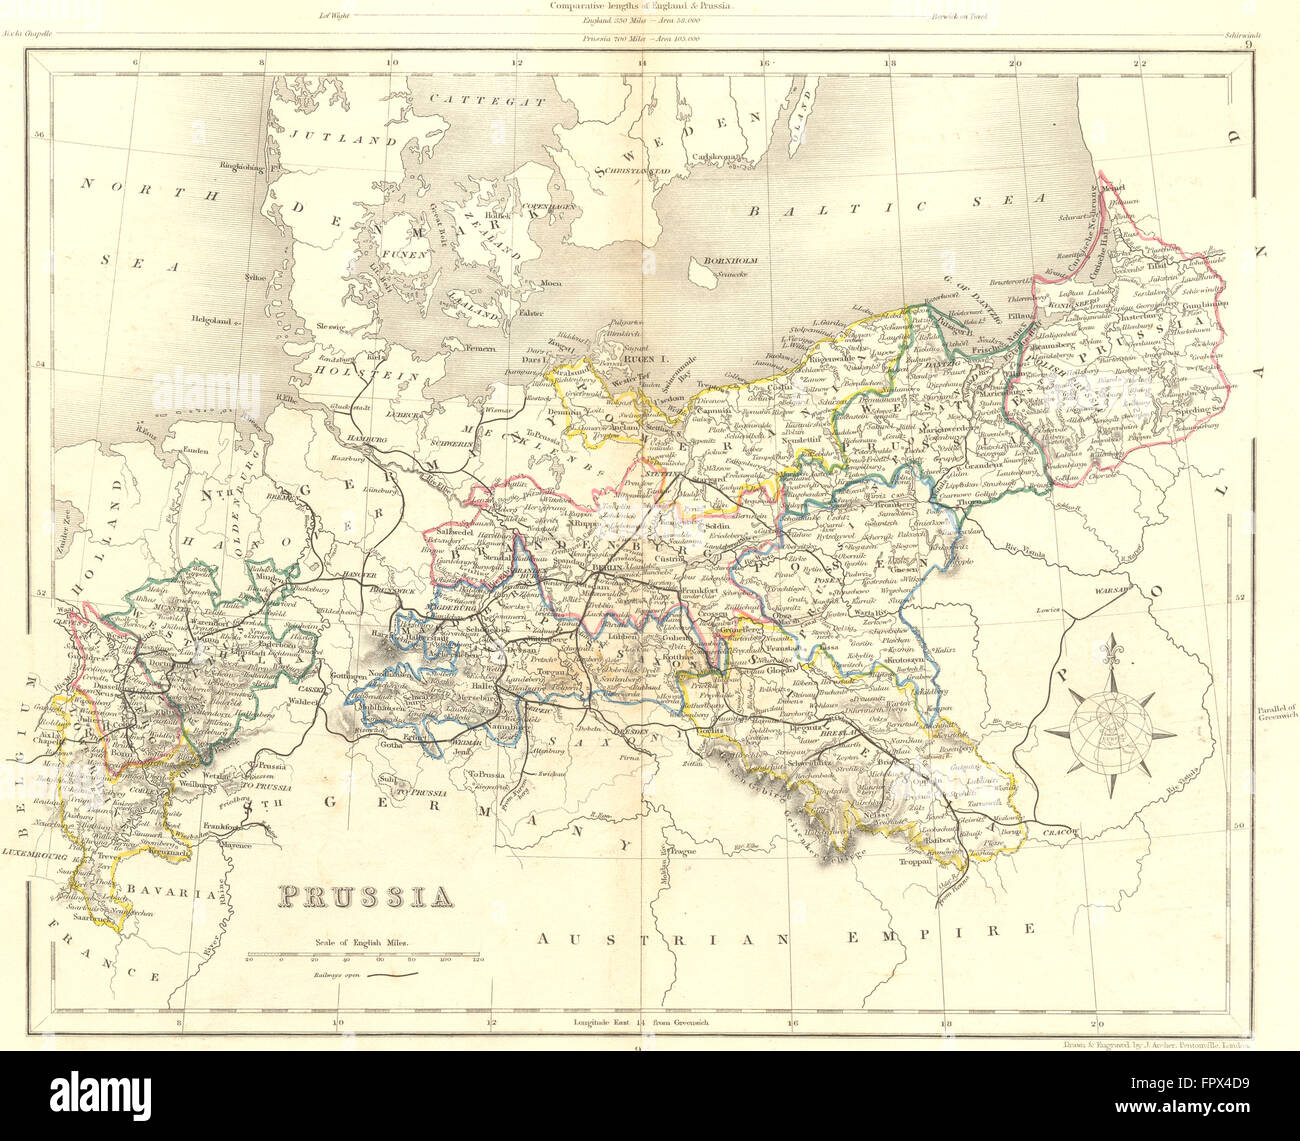 GERMANY Prussia Collins HG Antique Map Stock Photo - Germany map in 1850